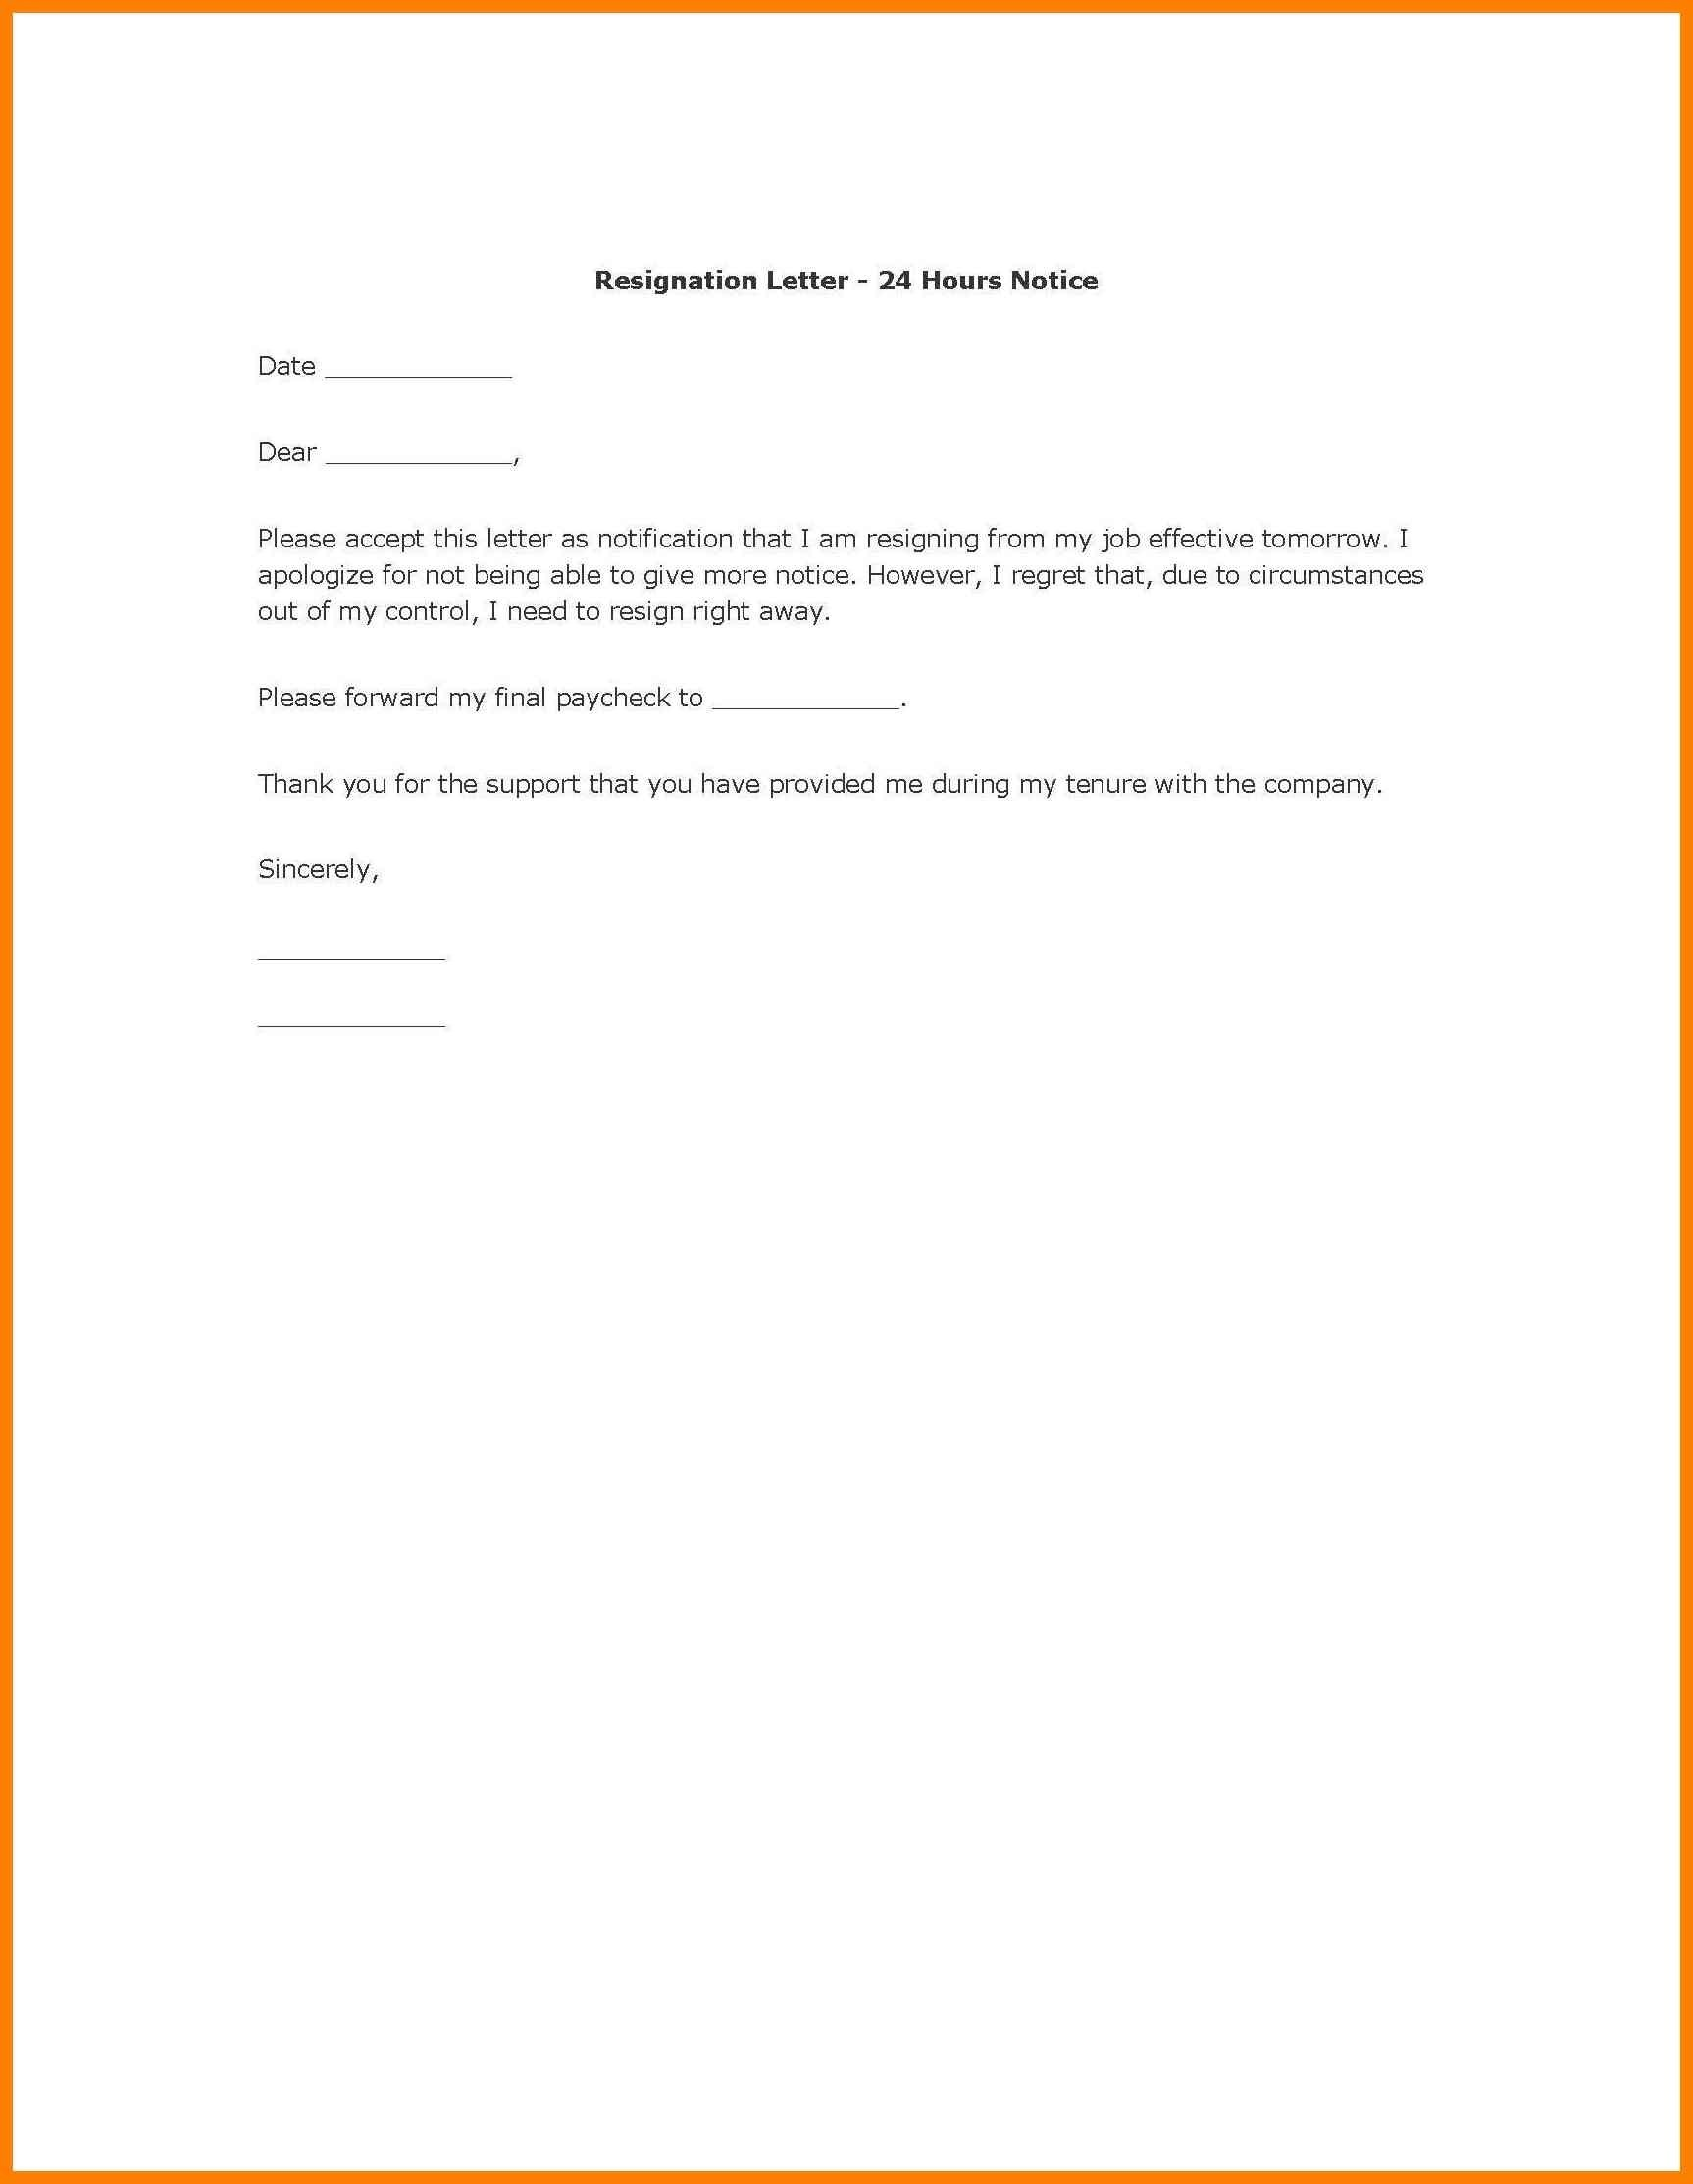 Sample Resignation Letter Format Malaysia Copy Simp Epic Sample